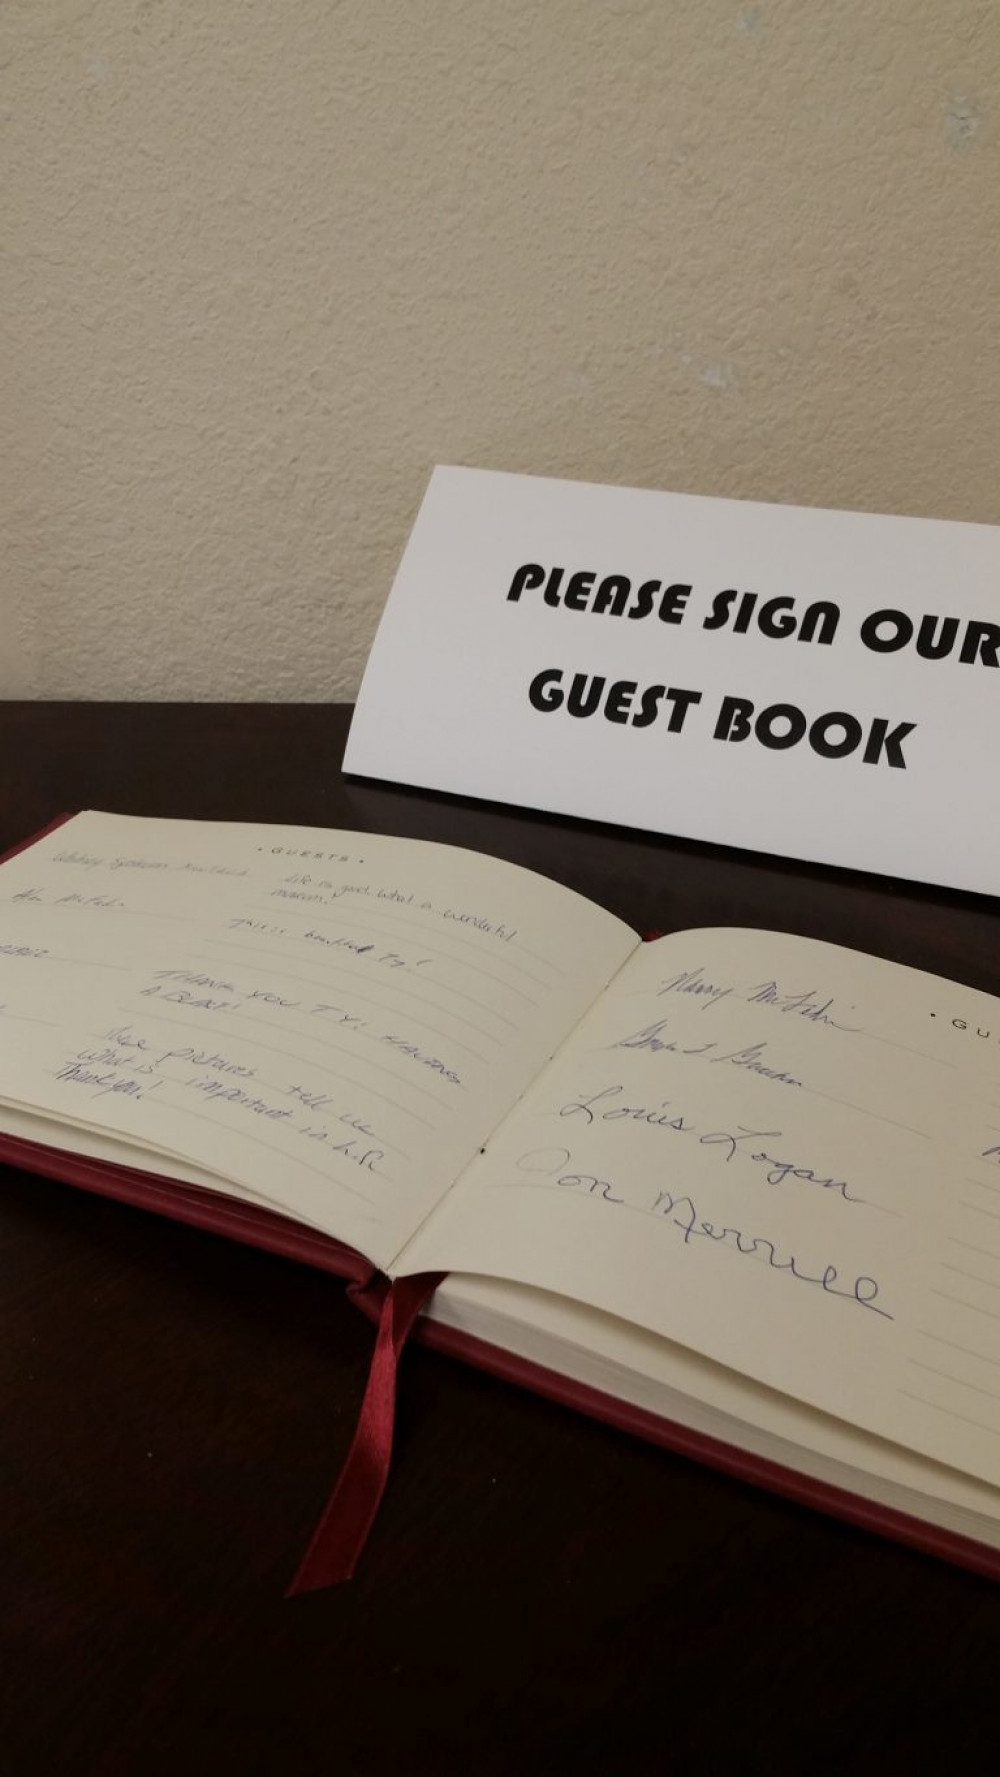 Ty Ballinger's guest book